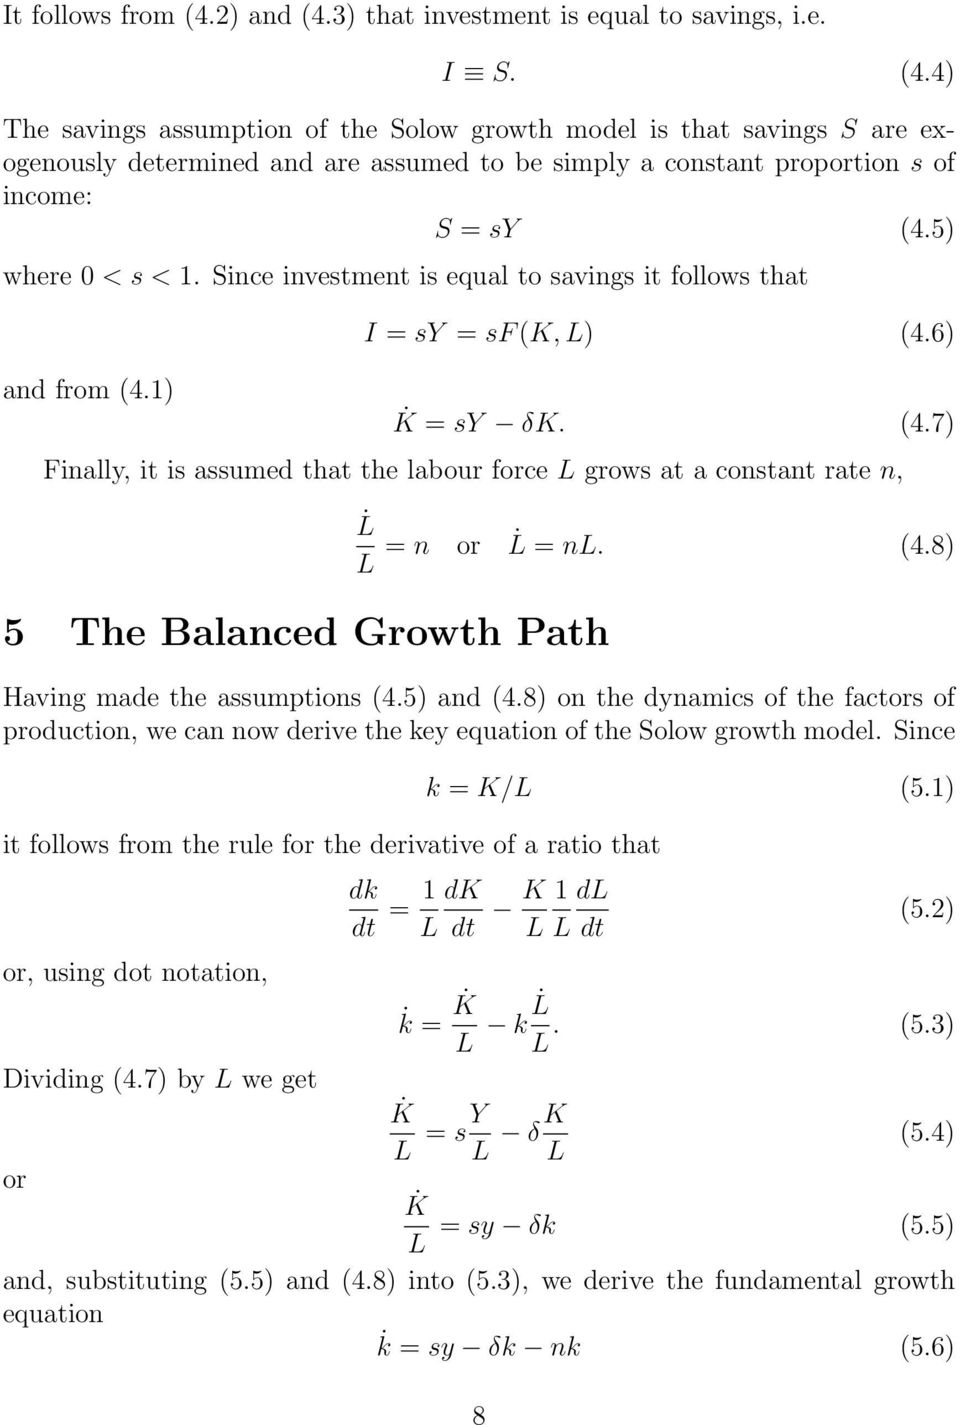 6) and from (4.1) K = sy δk. (4.7) Finally, it is assumed that the labour force L grows at a constant rate n, 5 The Balanced Growth Path L L = n or L = nl. (4.8) Having made the assumptions (4.